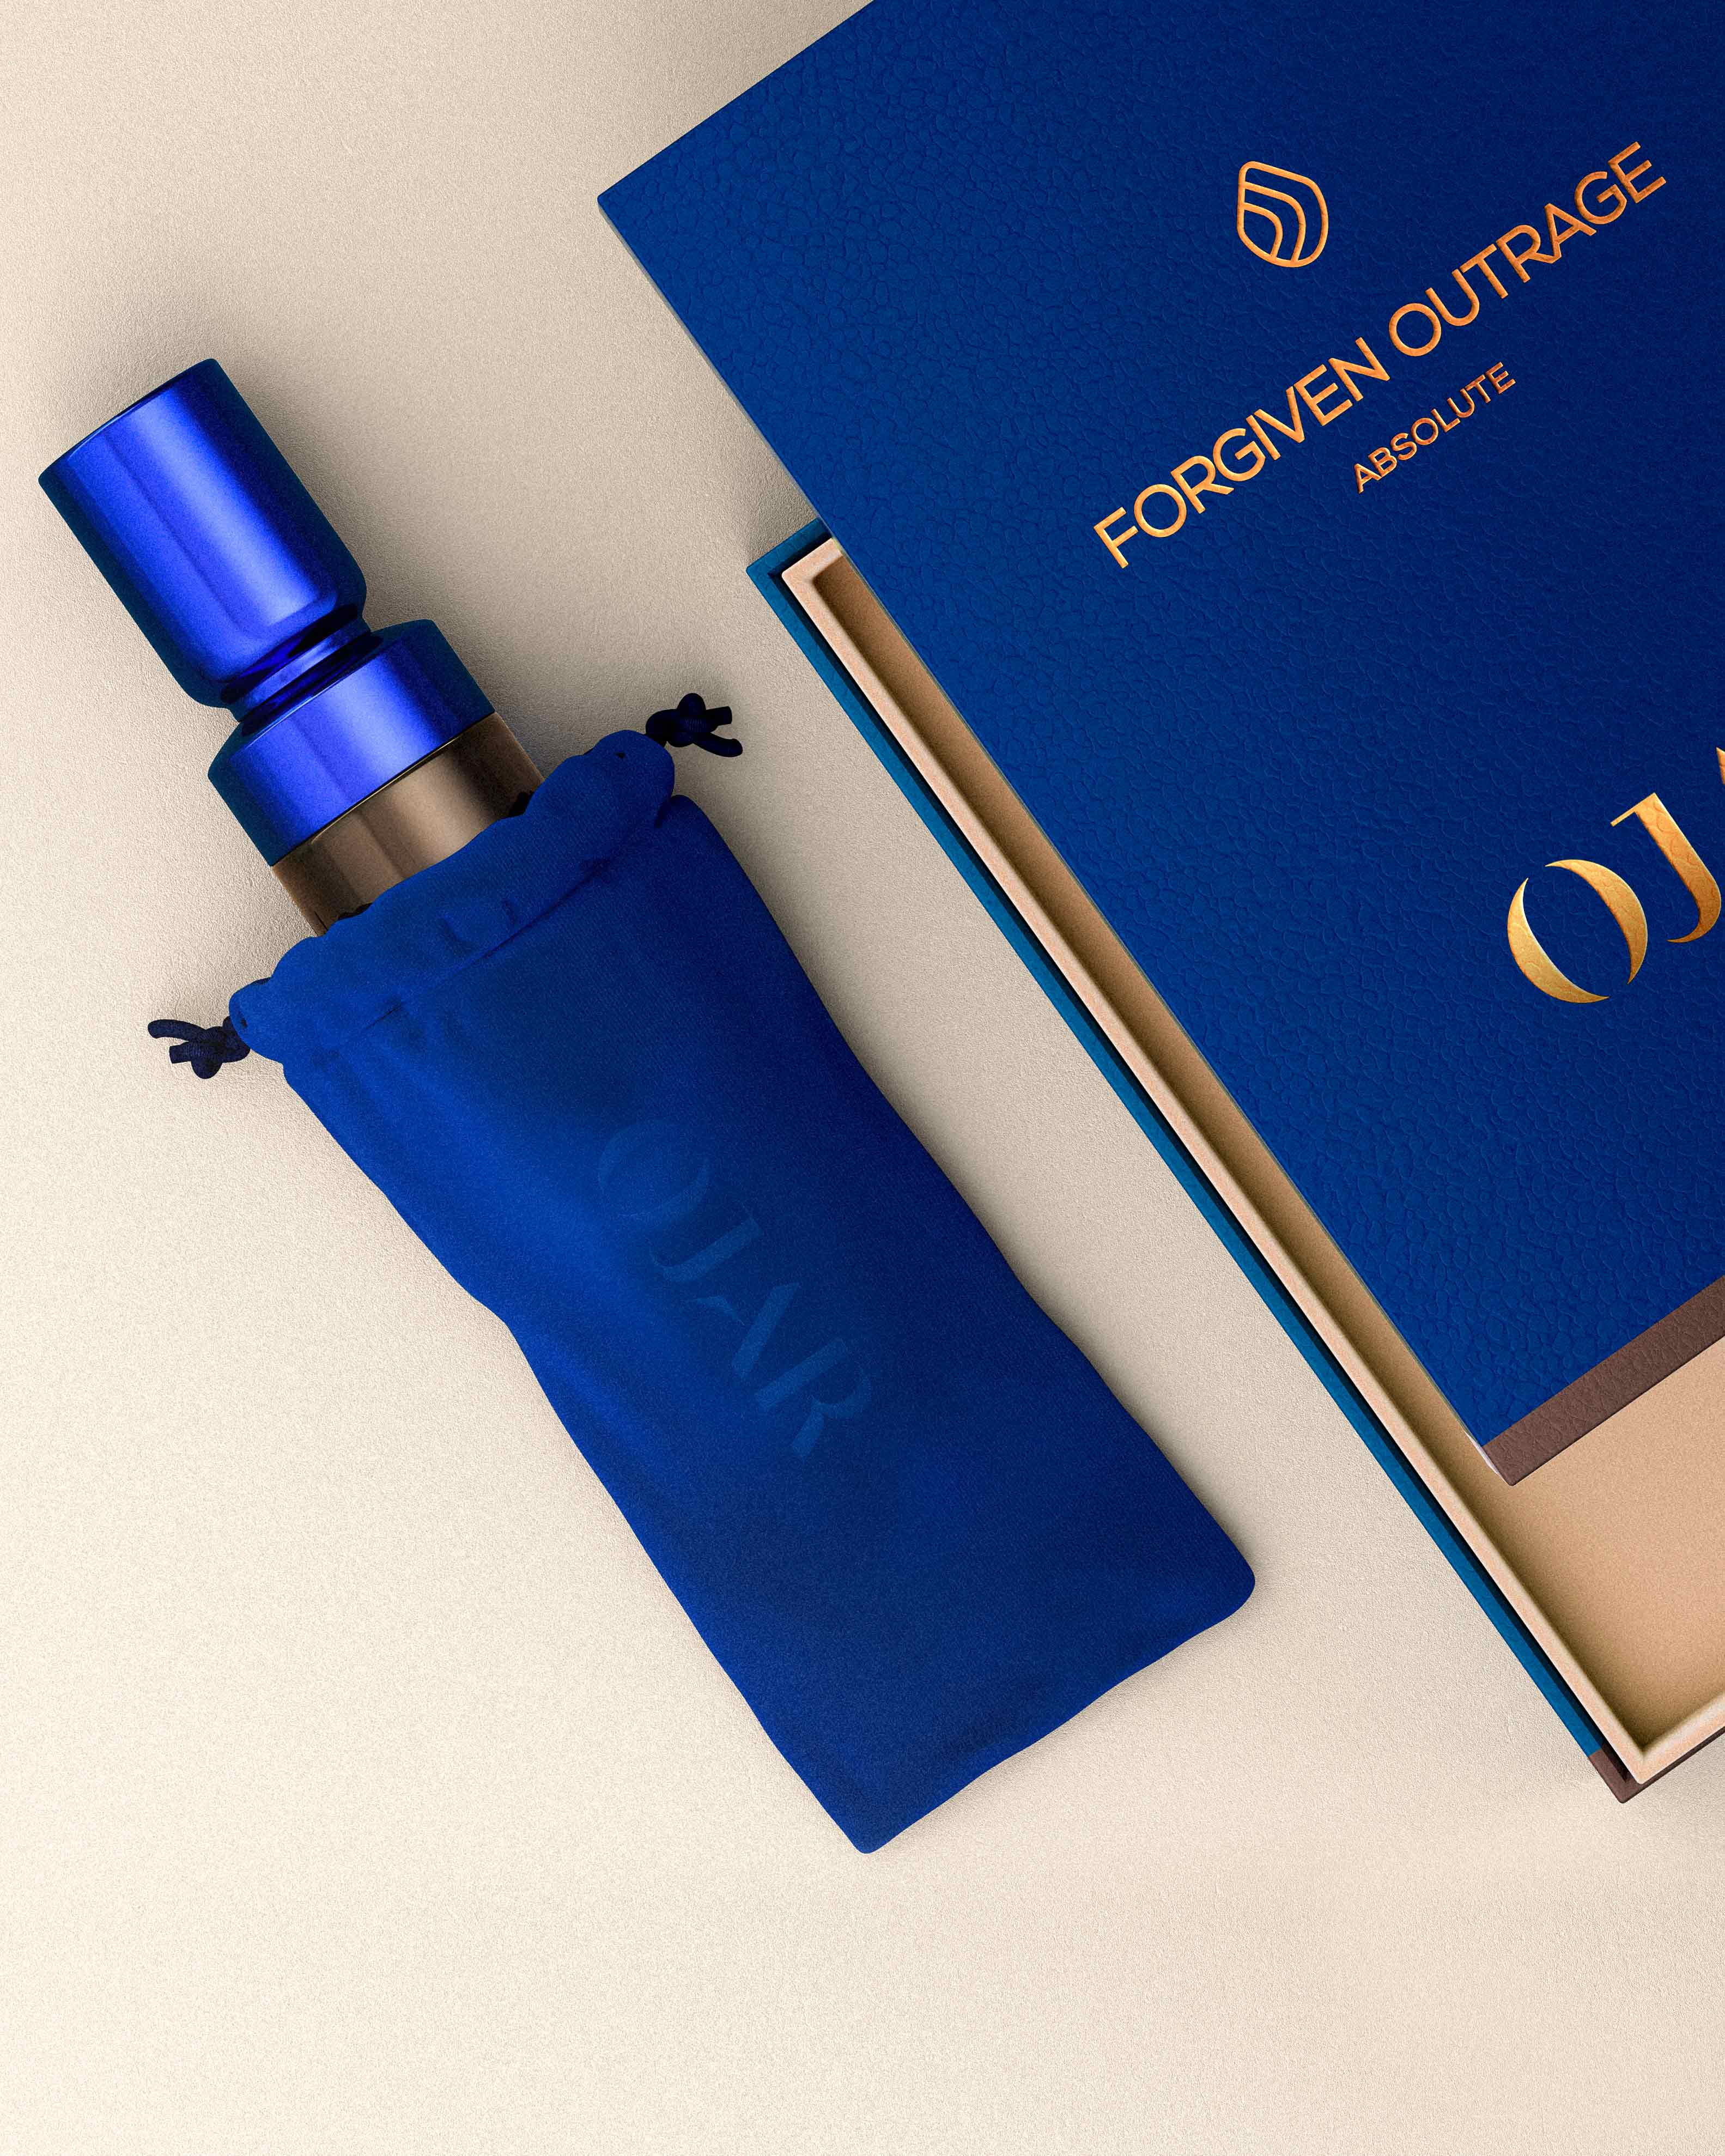 OJAR Absolute Forgiven Outrage Perfume Pack Pouch